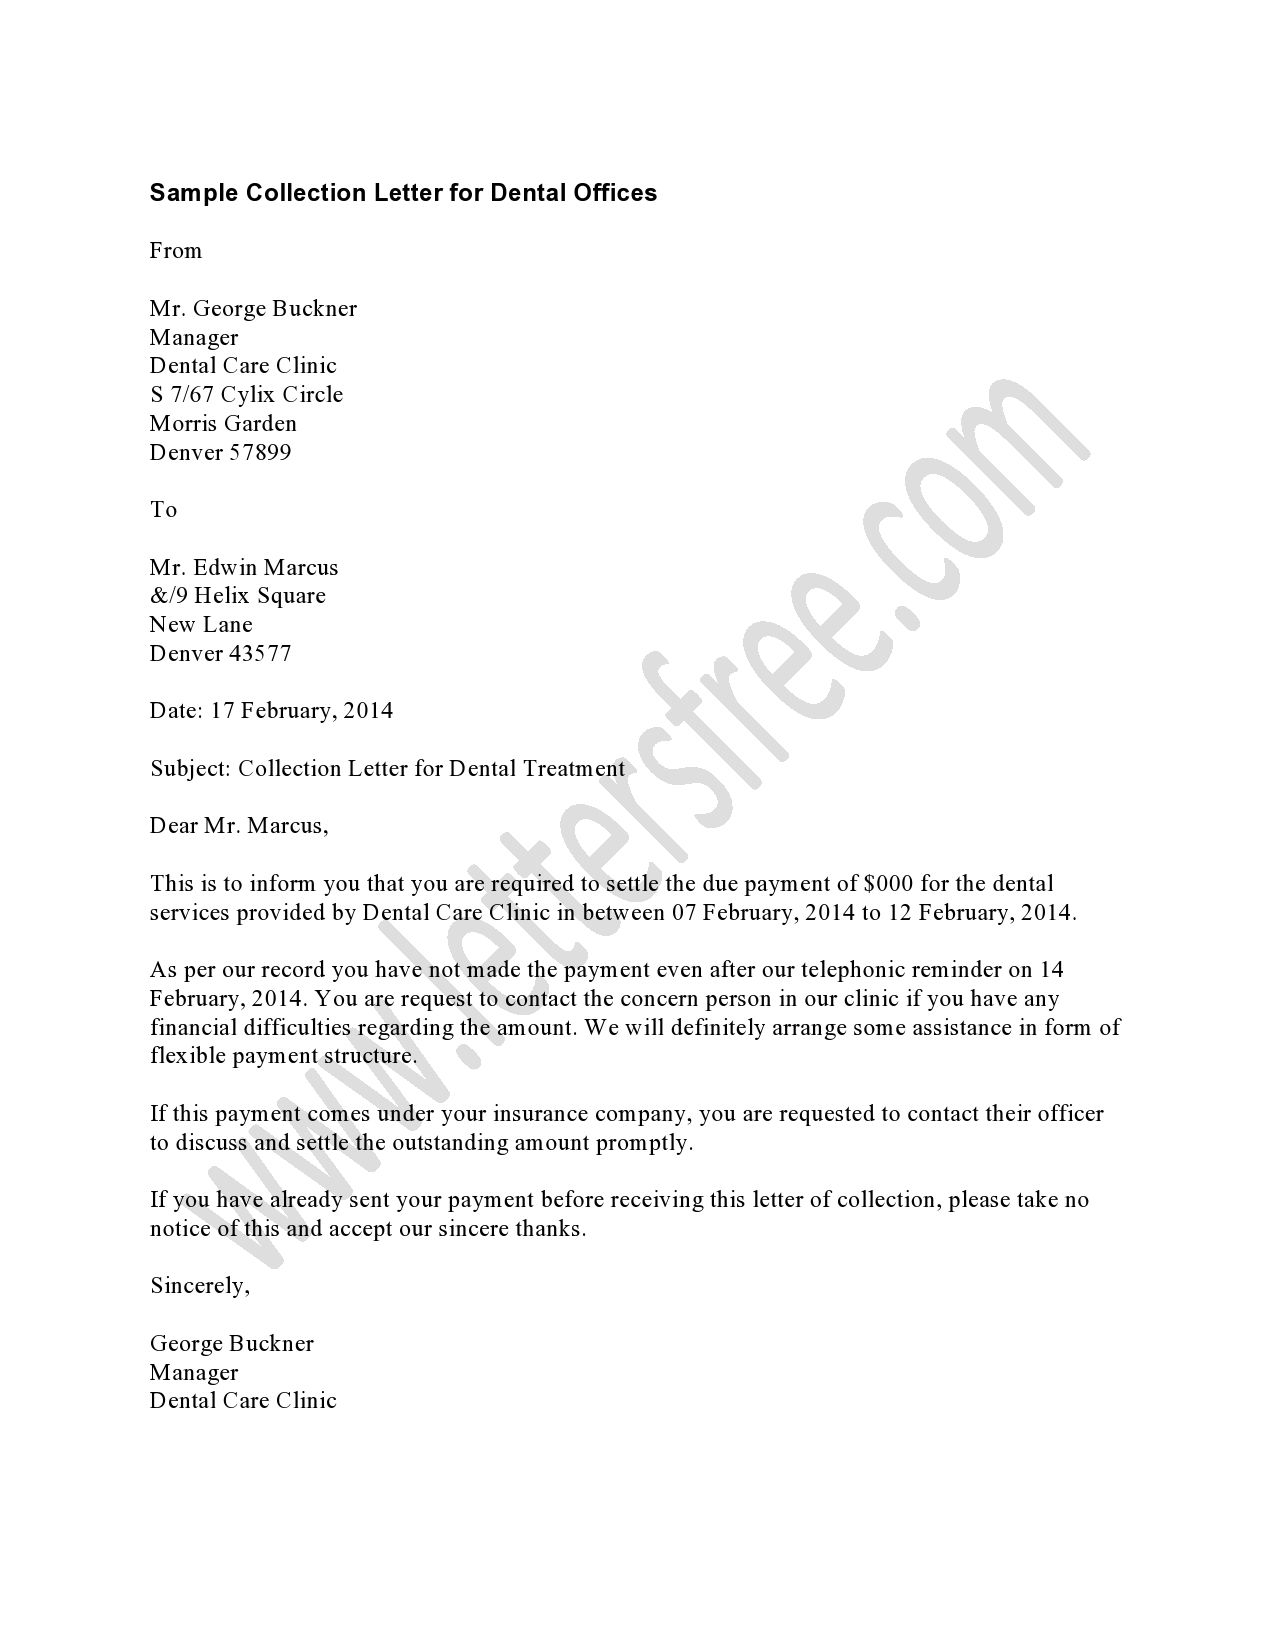 Collection Letter Template for Medical Office - the Dental Collection Letter Should Be Used as A First Late Notice